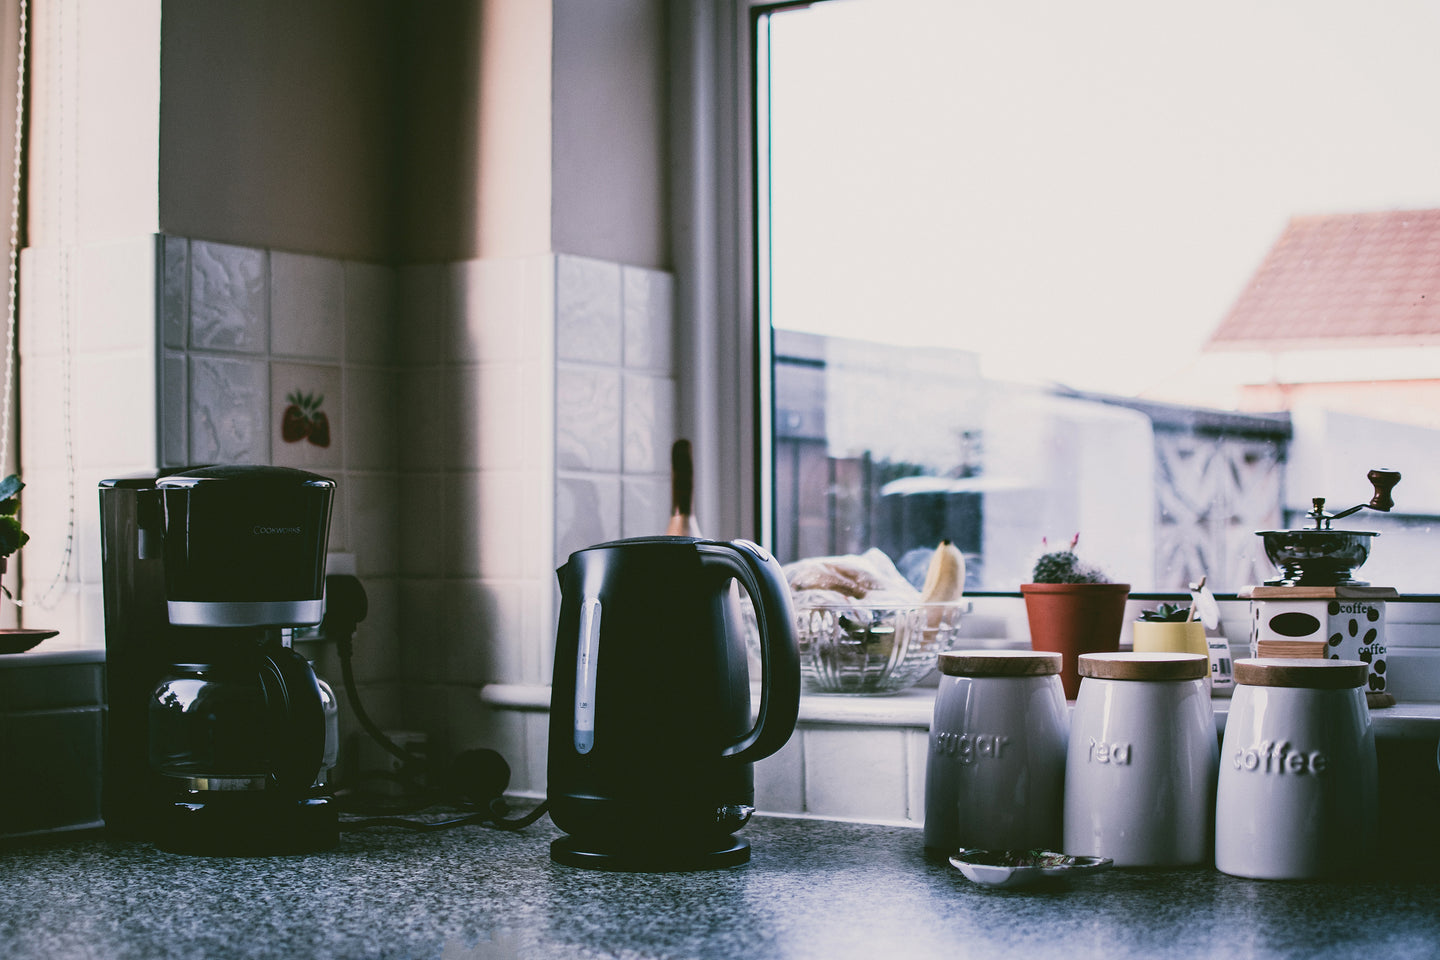 Photograph of a kitchen counter - W-Photographie